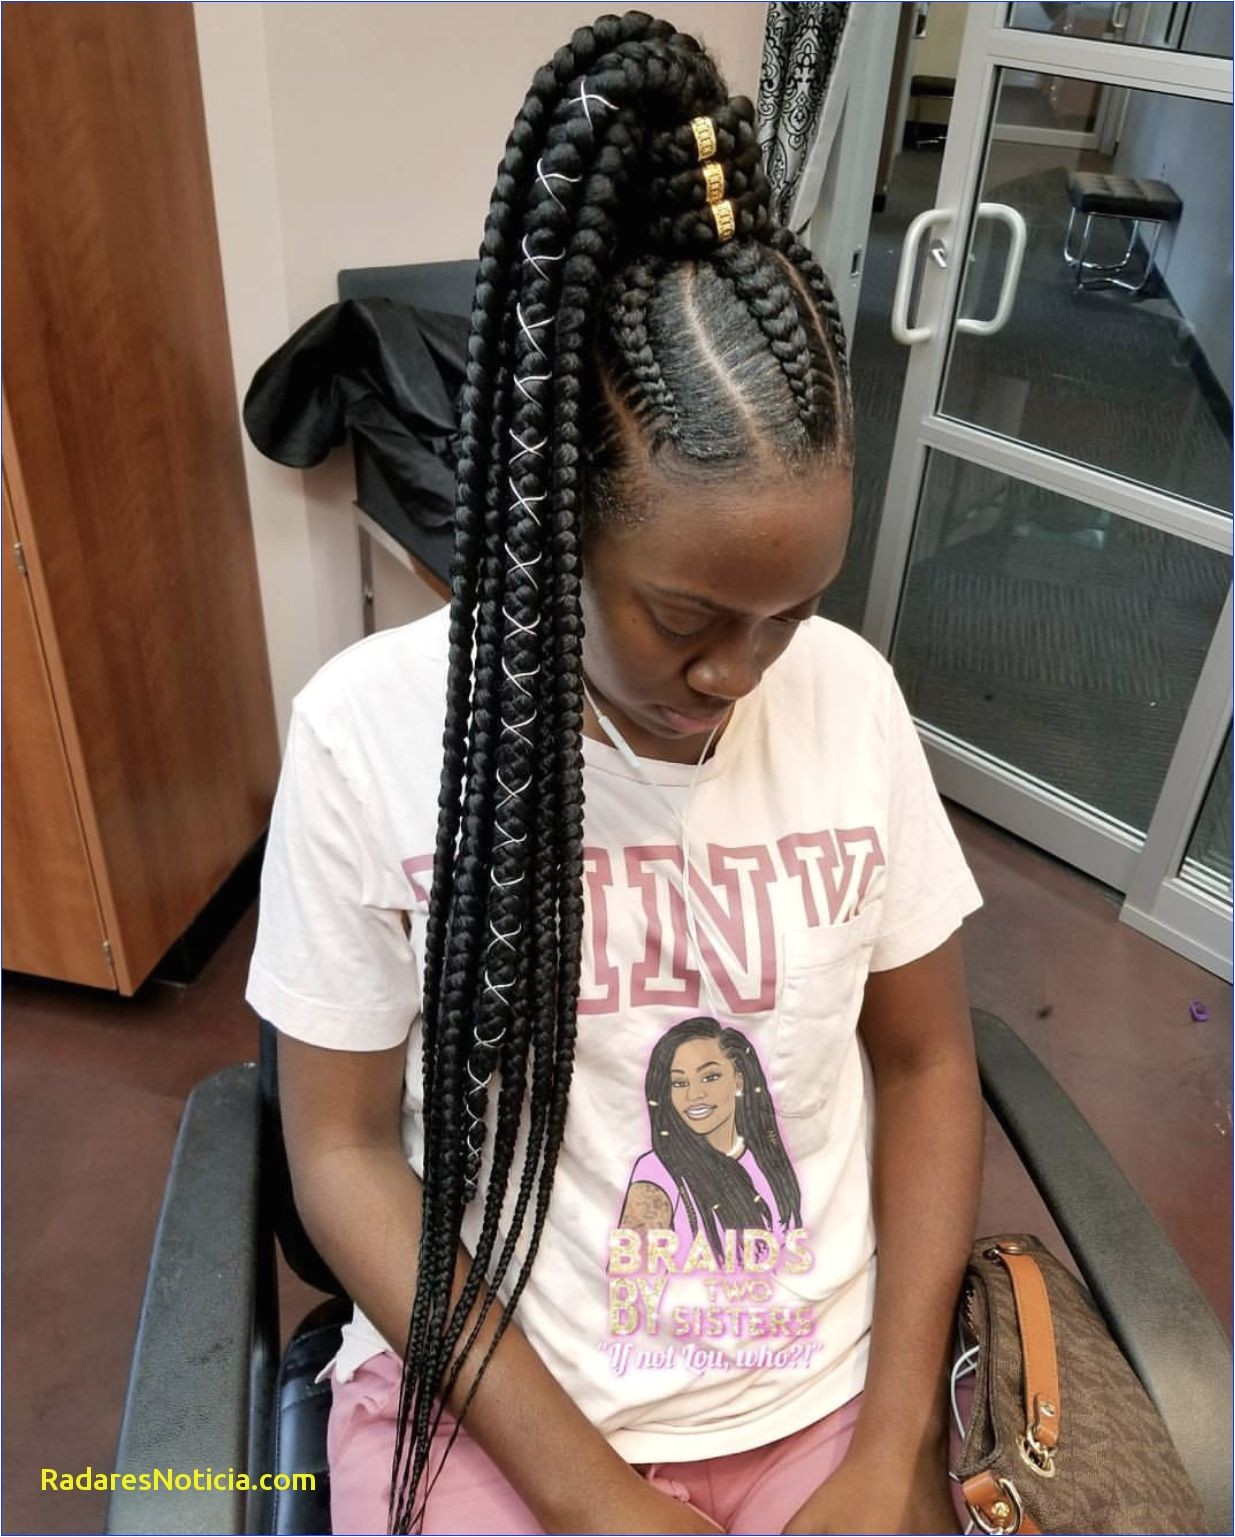 Braids Cornrows Kid Braids Plaits Ghana Braids Black Girls Hairstyles Woman Hairstyles Long Hairstyles Black Braided